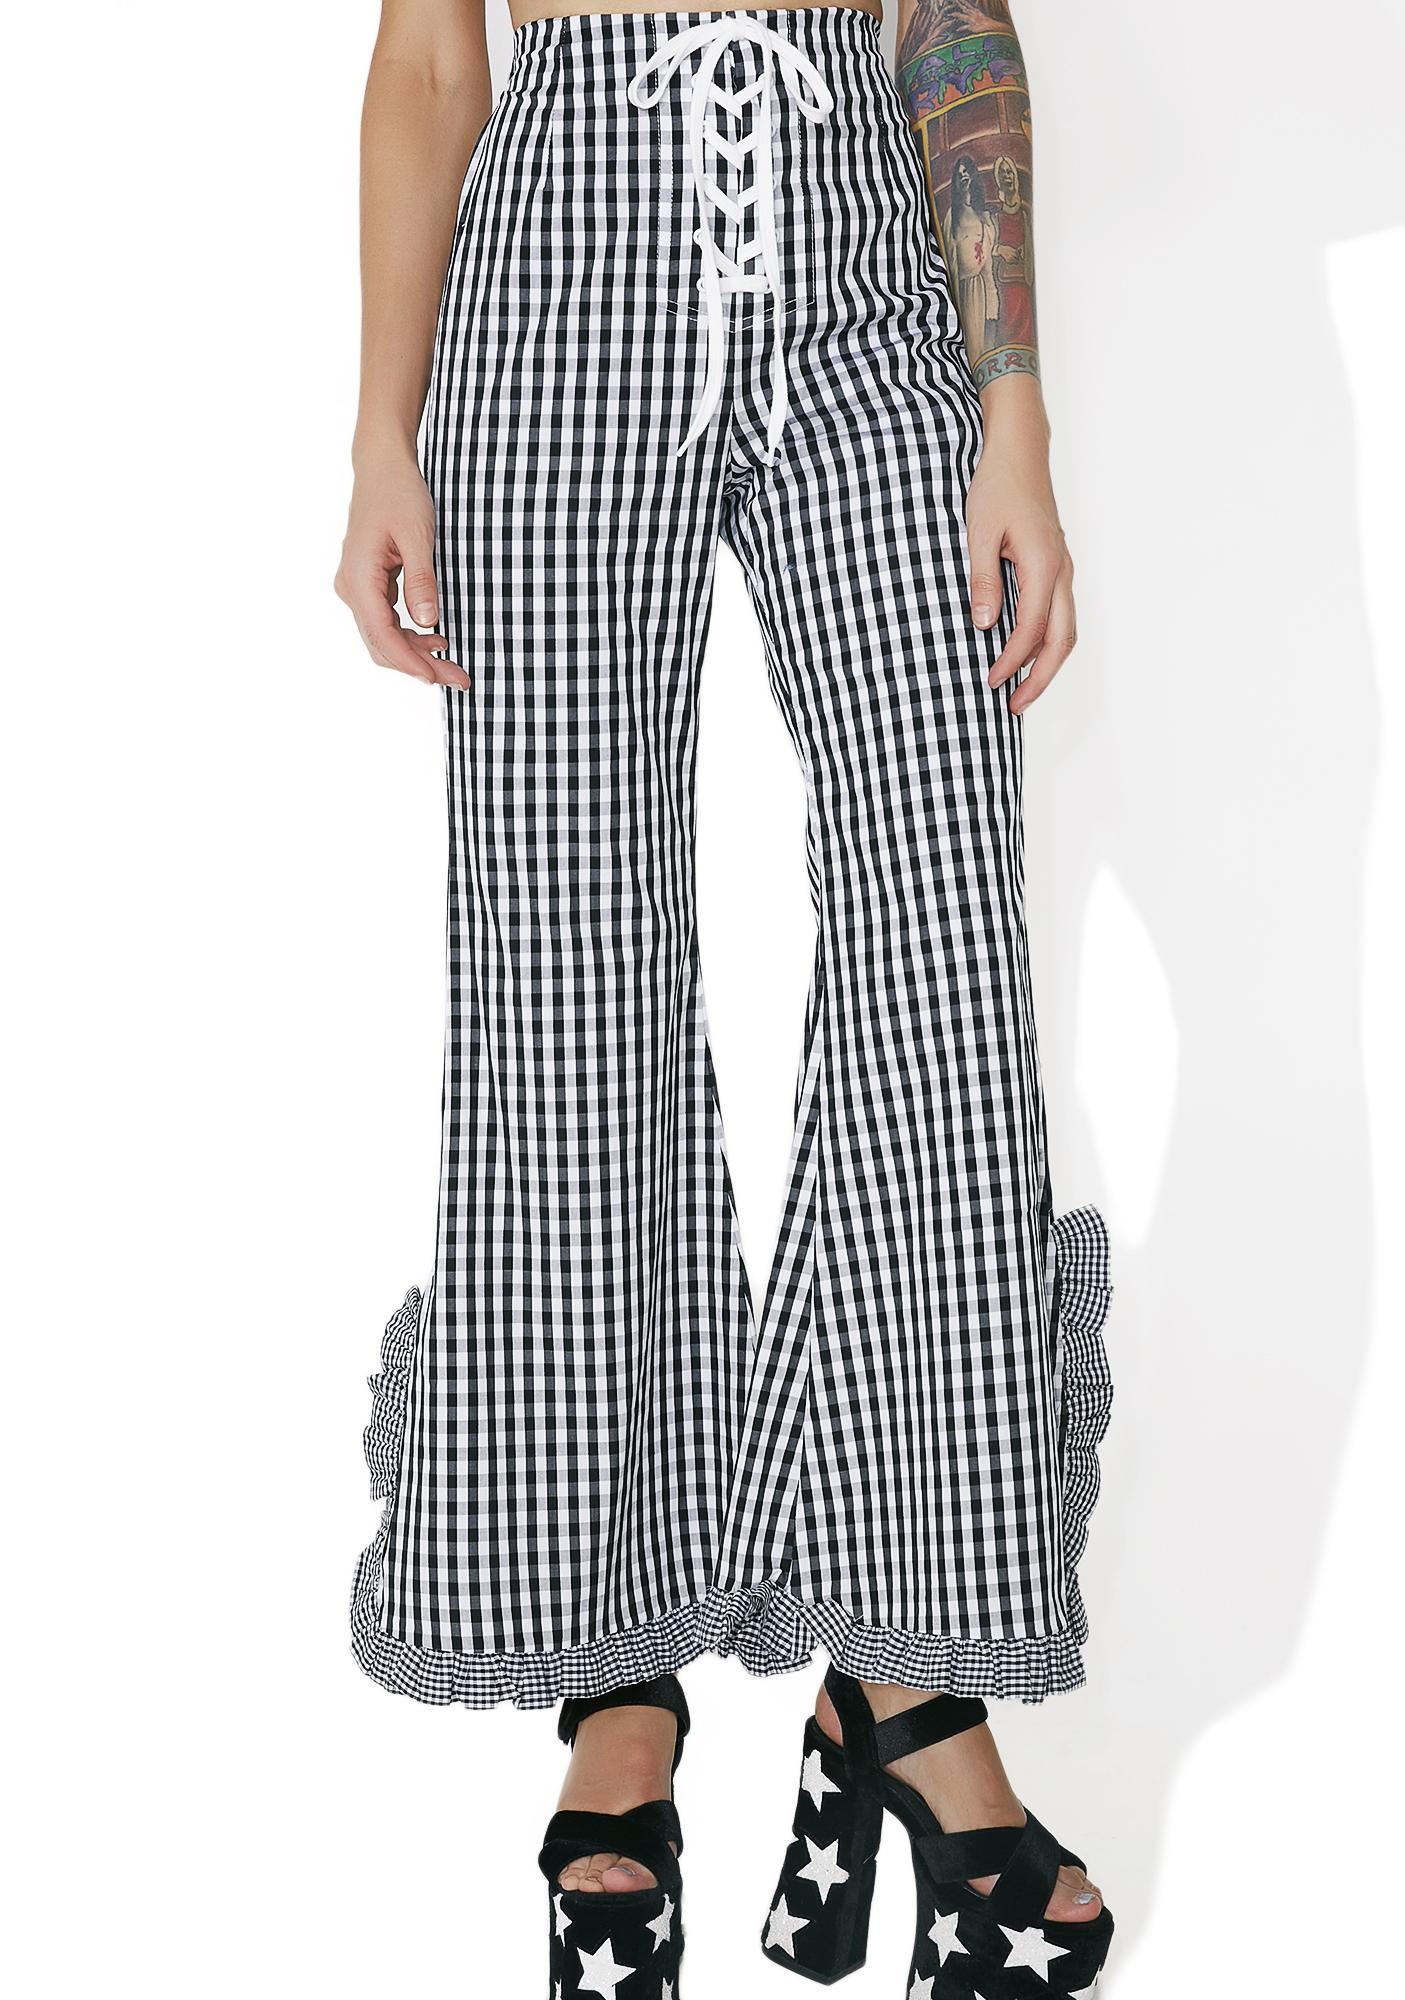 one spo Gingham Check Bell Bottoms